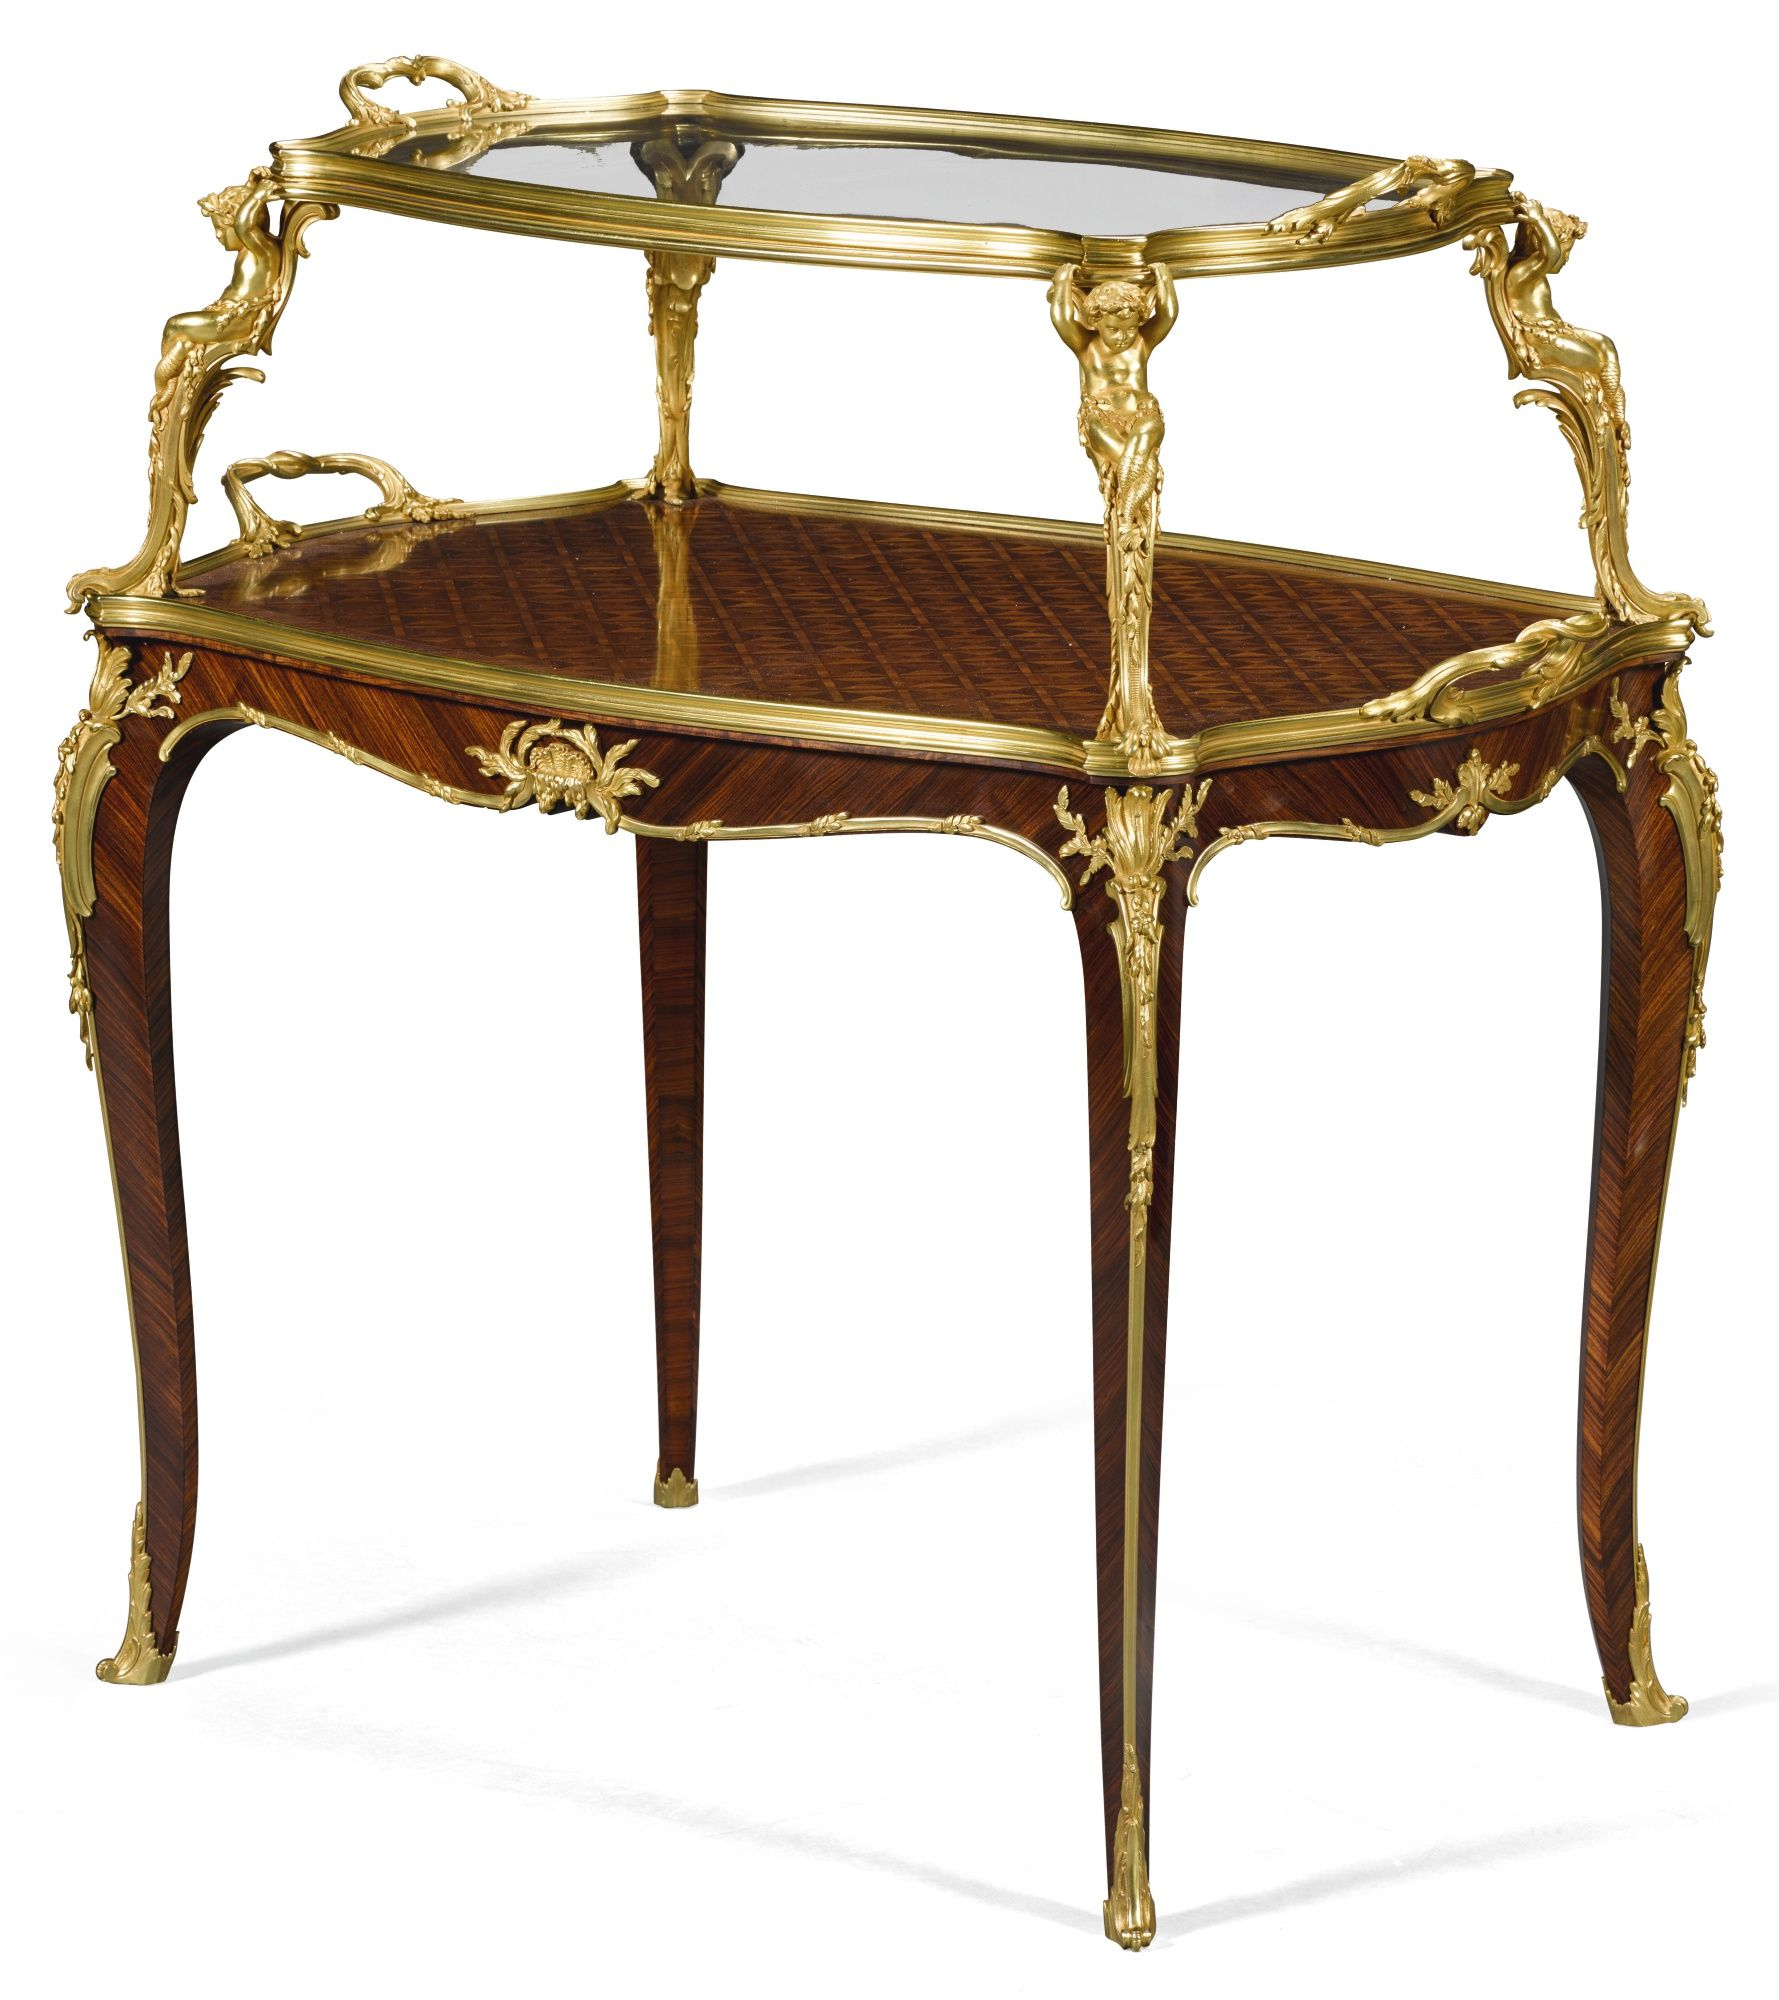 c1900 A Louis XV style giltbronze mounted kingwood and